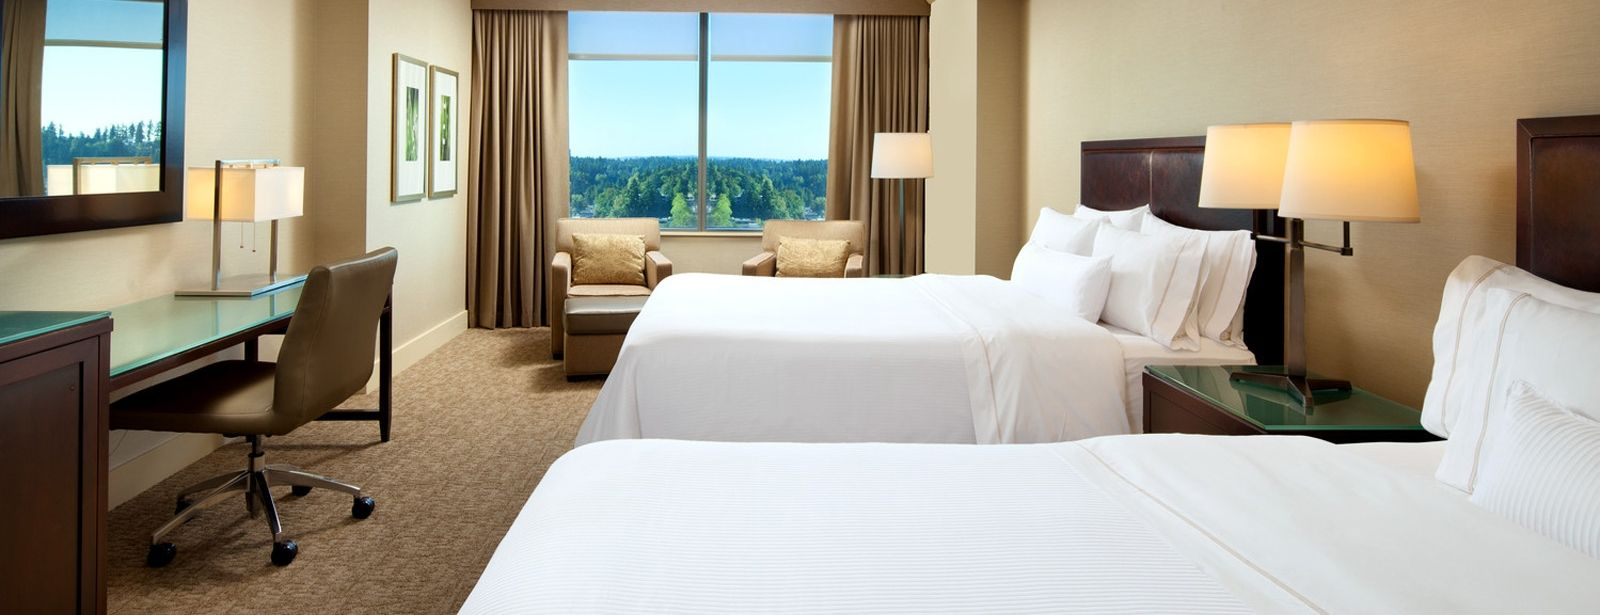 The Westin Bellevue Hotel - Deluxe Room